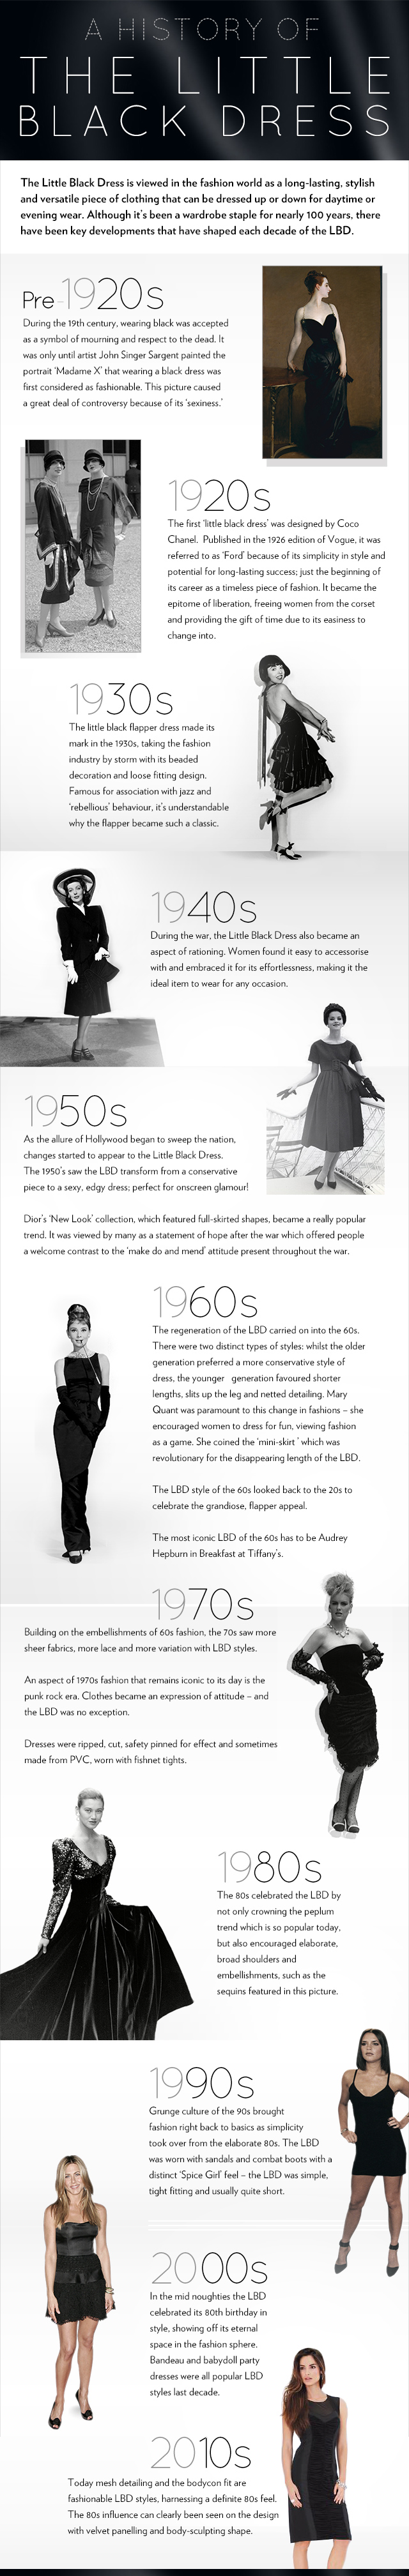 history-of-the-little-black-dress_50b78ae9488ba